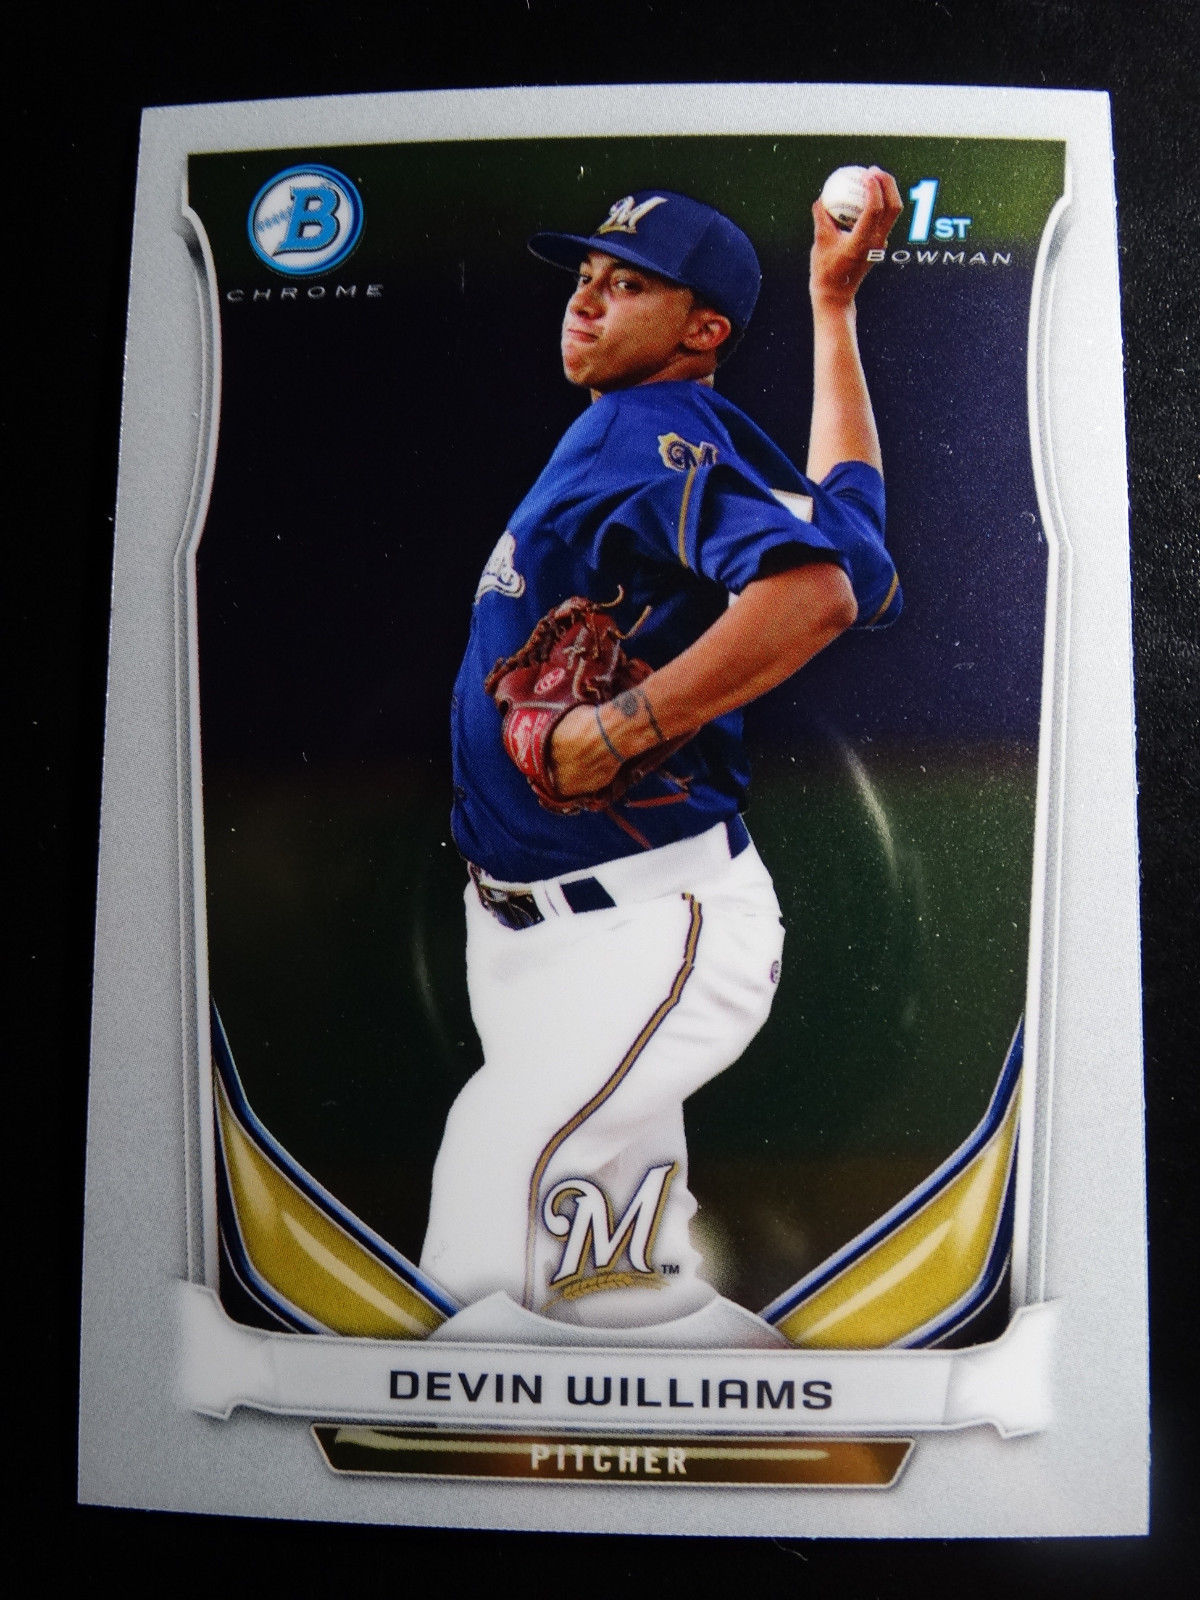 Primary image for 2014 Bowman Chrome #BCP7 Devin Williams Milwaukee Brewers Baseball Rookie Card